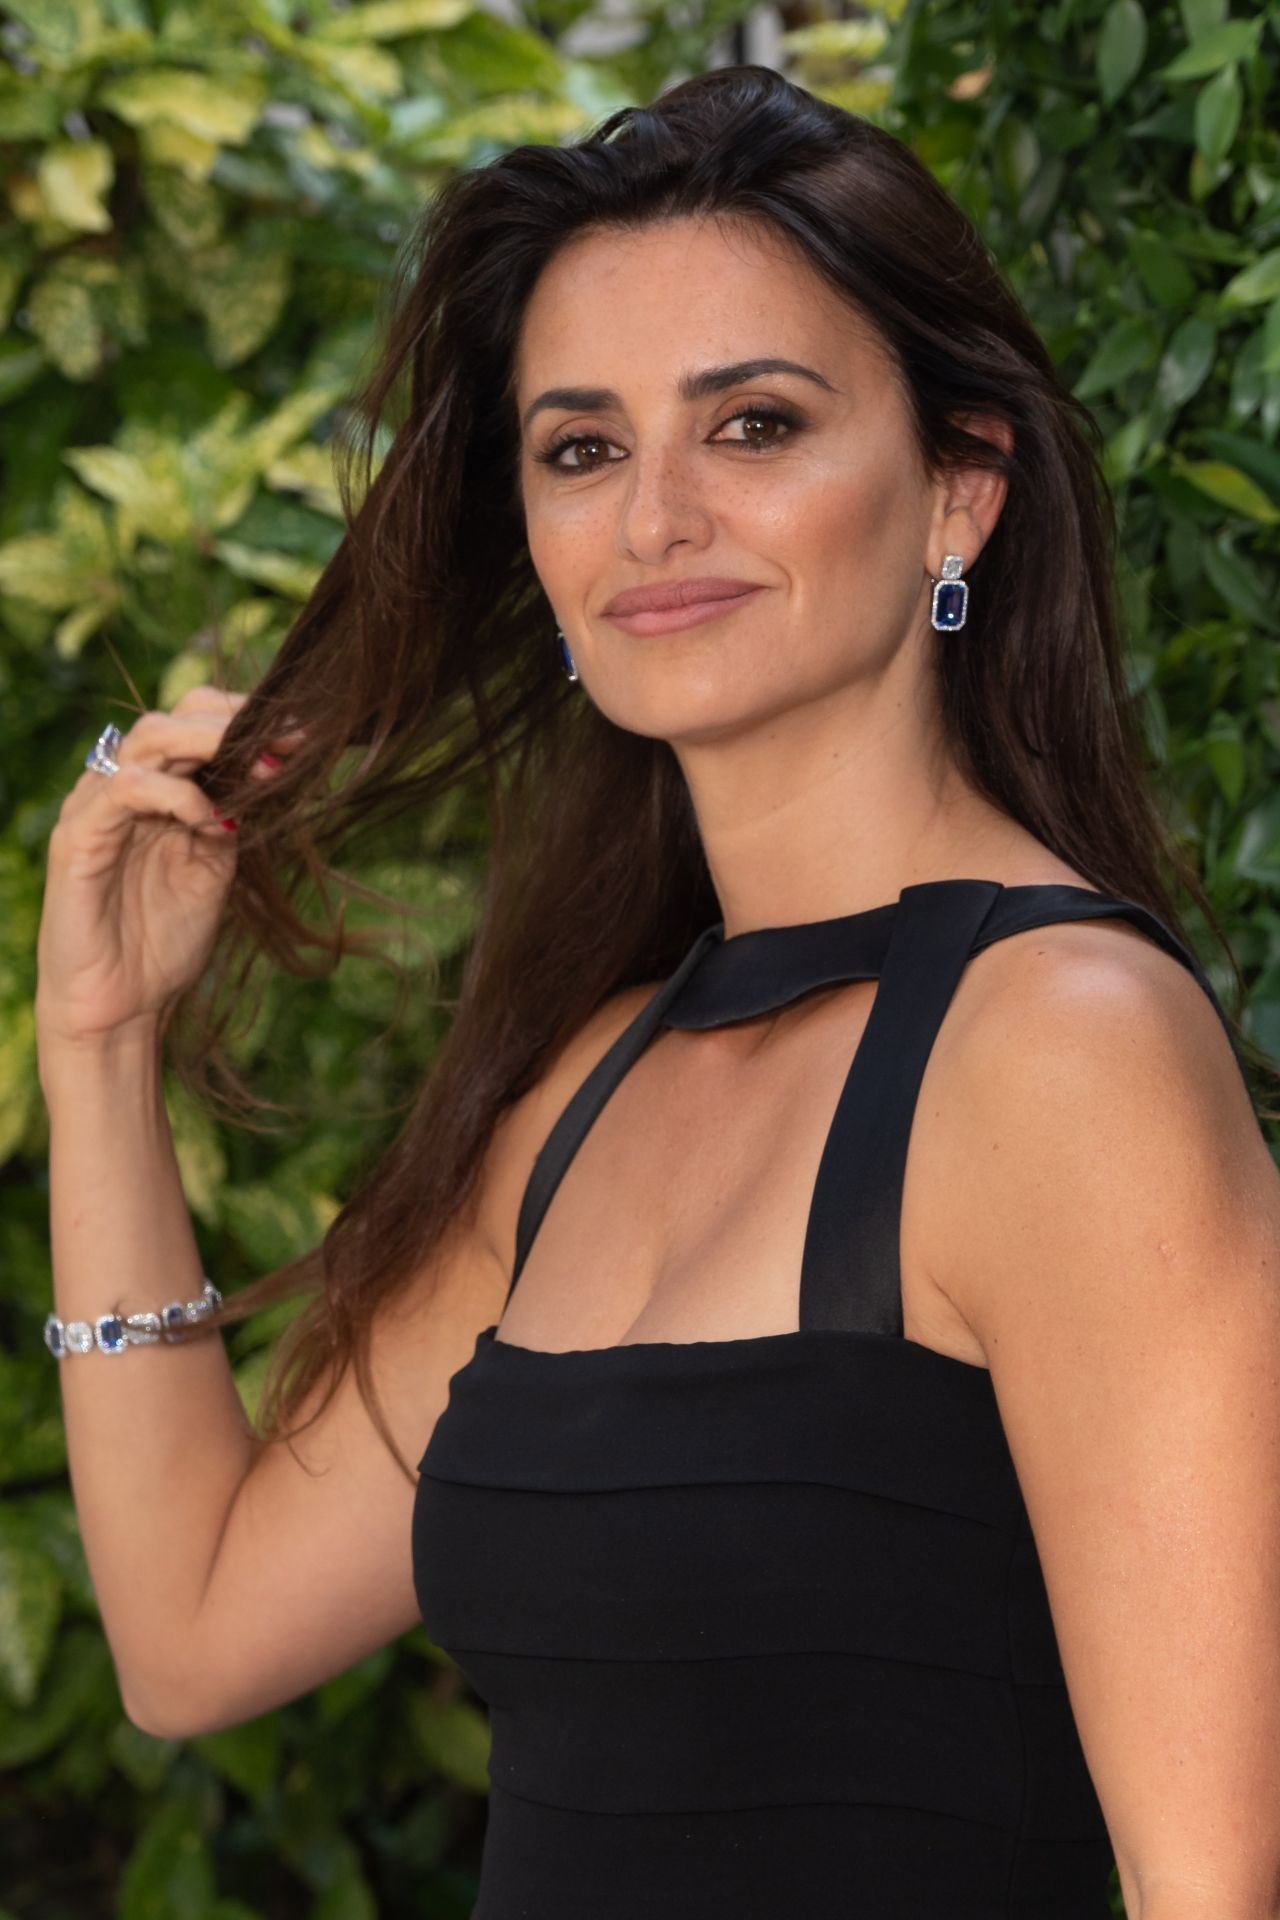 https://celebmafia.com/wp-content/uploads/2018/07/penelope-cruz-atelier-swarovski-cocktail-party-in-paris-07-02-2018-13.jpg